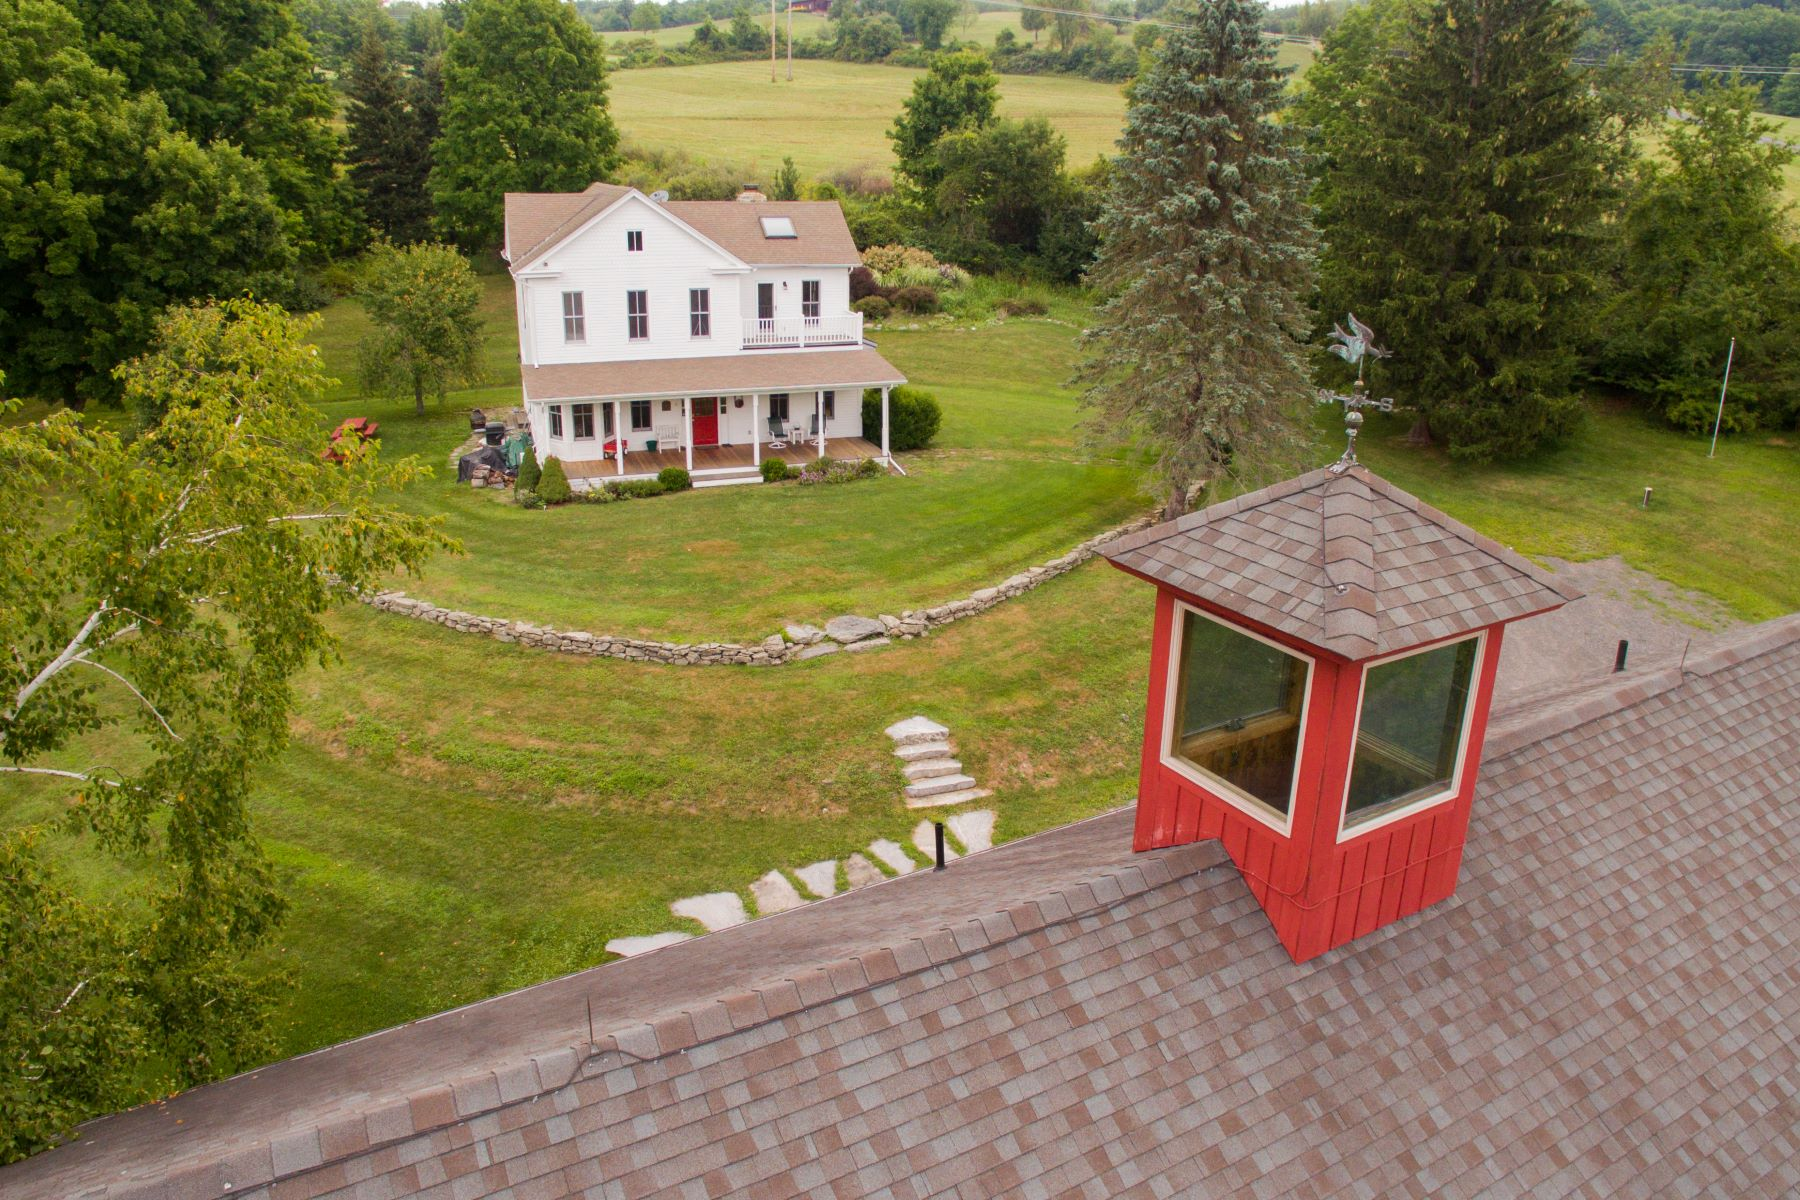 Single Family Home for Sale at Restored Farmhouse and Converted Barn on 50 plus Acres 153 Two Town Rd Hillsdale, New York 12529 United States